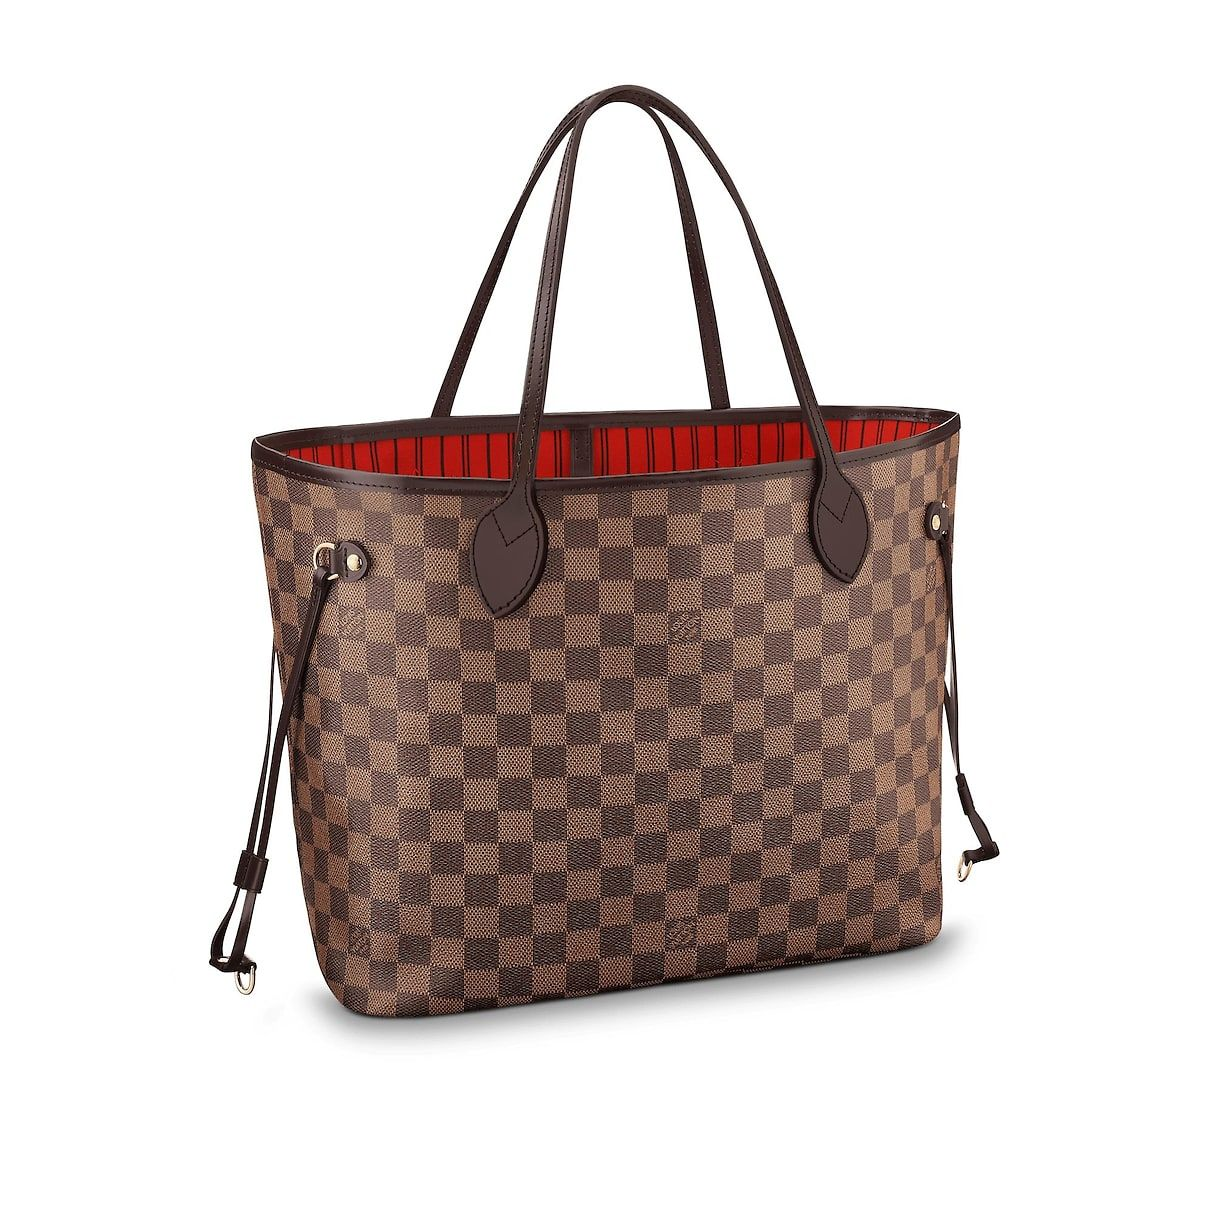 View 1 - Damier Ebene HANDBAGS Business Bags Neverfull MM  68ec6222507ed